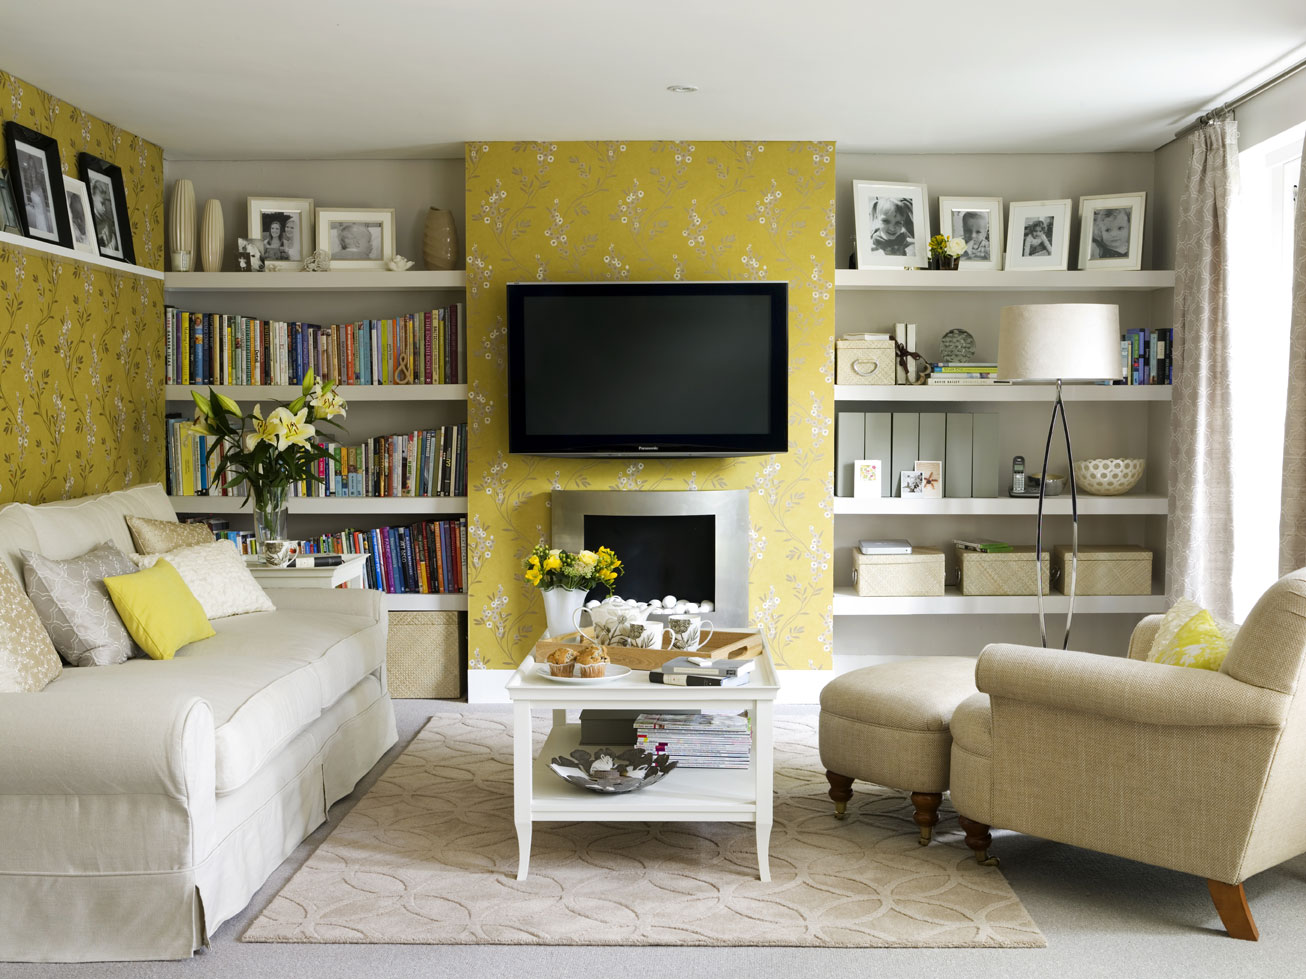 Living Room Living Room Pics yellow room interior inspiration 55 rooms for your viewing pleasure